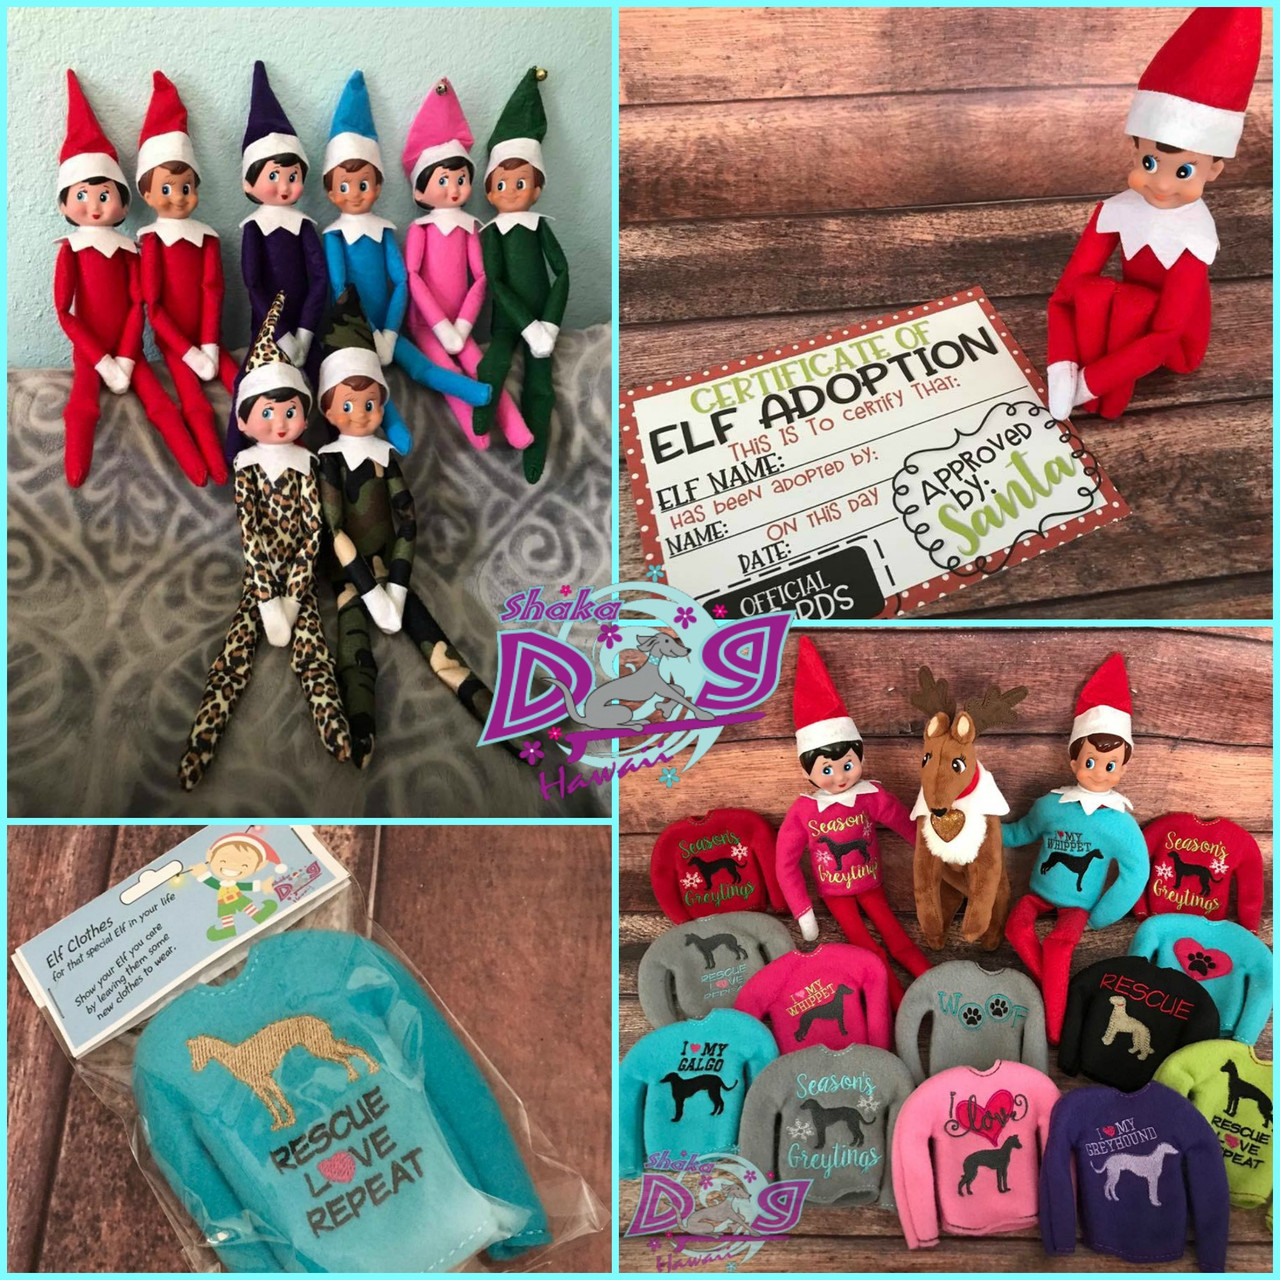 Elf Boutique Clothing and Accessories